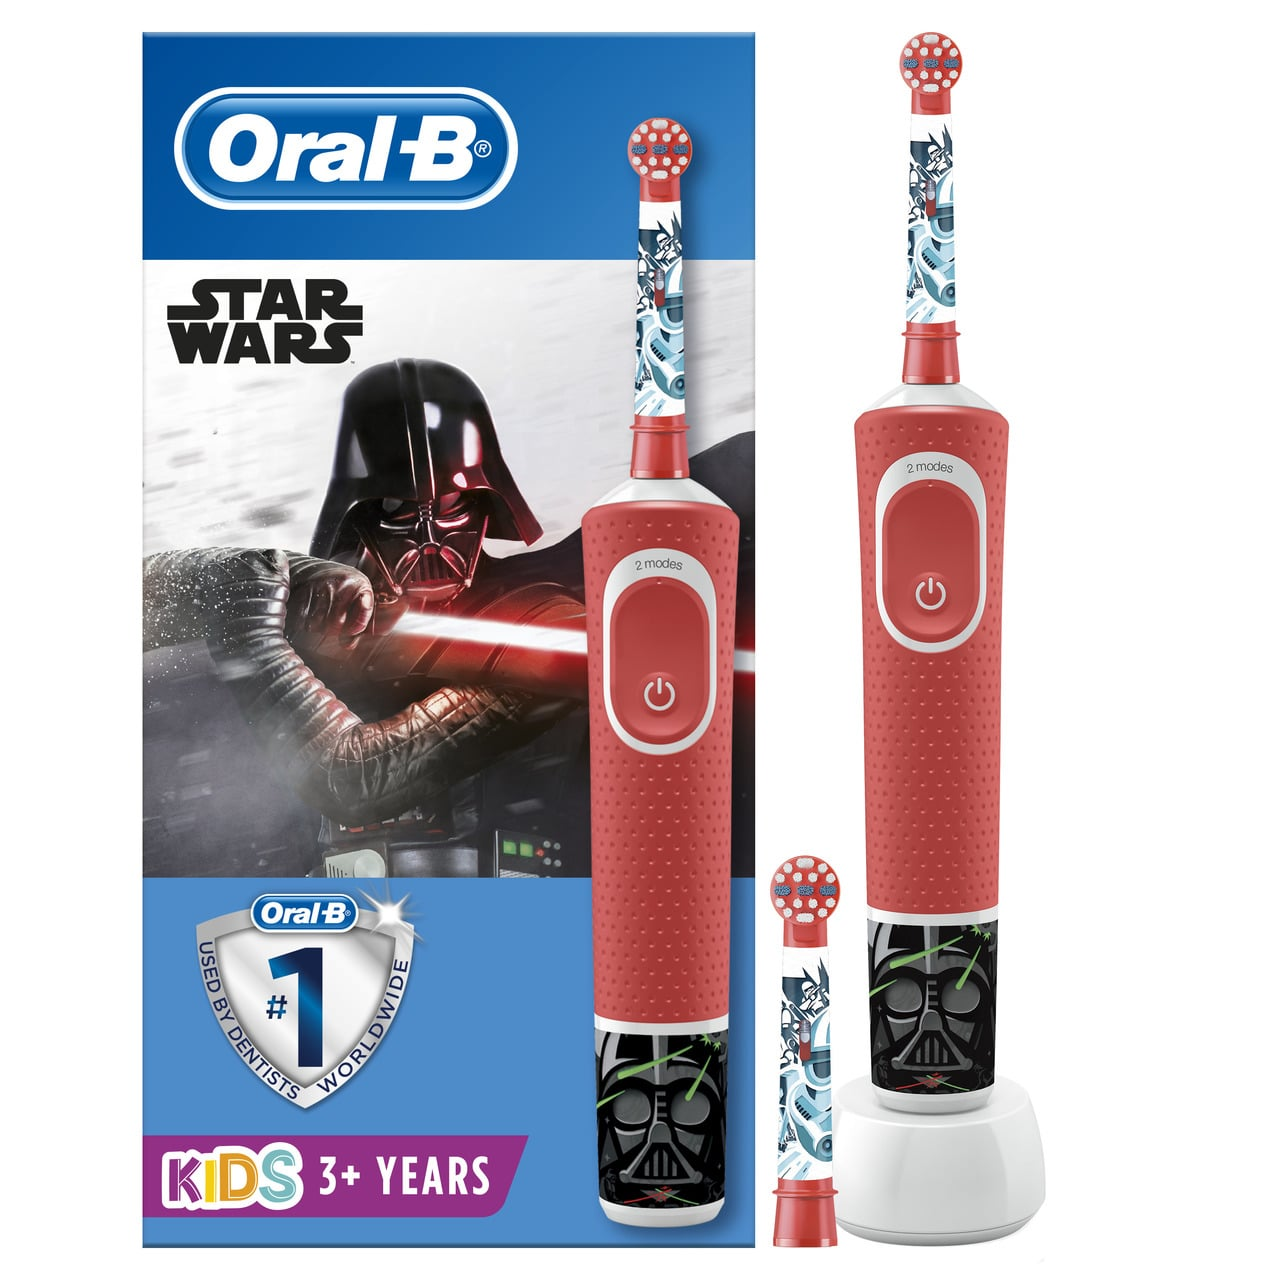 ORAL B POWER TOOTHBRUSH VITALITY STARWARS